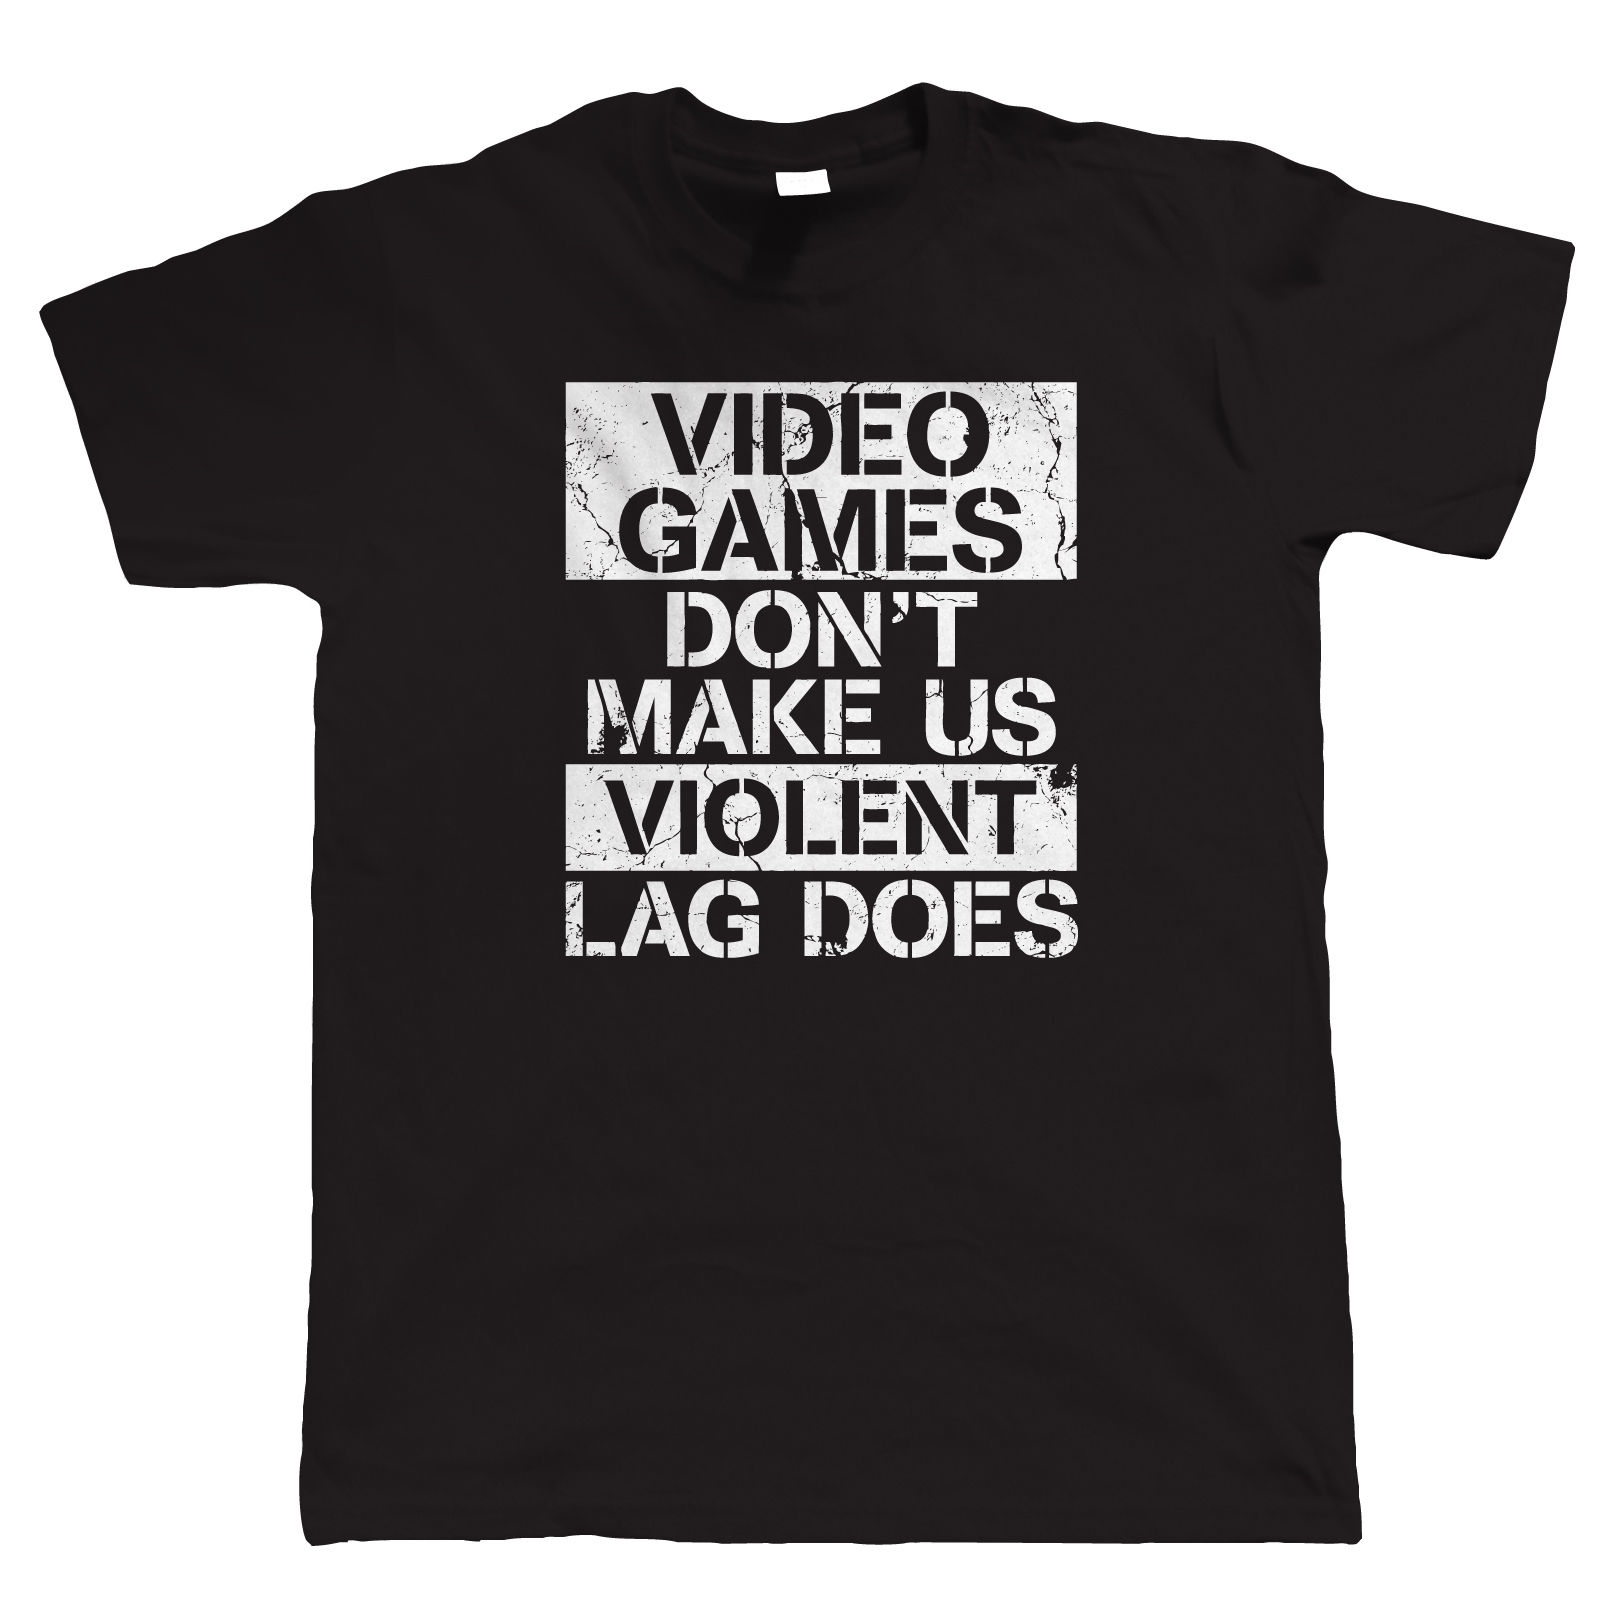 Funny T Shirts Online Novelty Personal DonT Make Us Violent Gam Pc Gam Fps Video Game Tall O Neck Short Sleeve Mens Tees